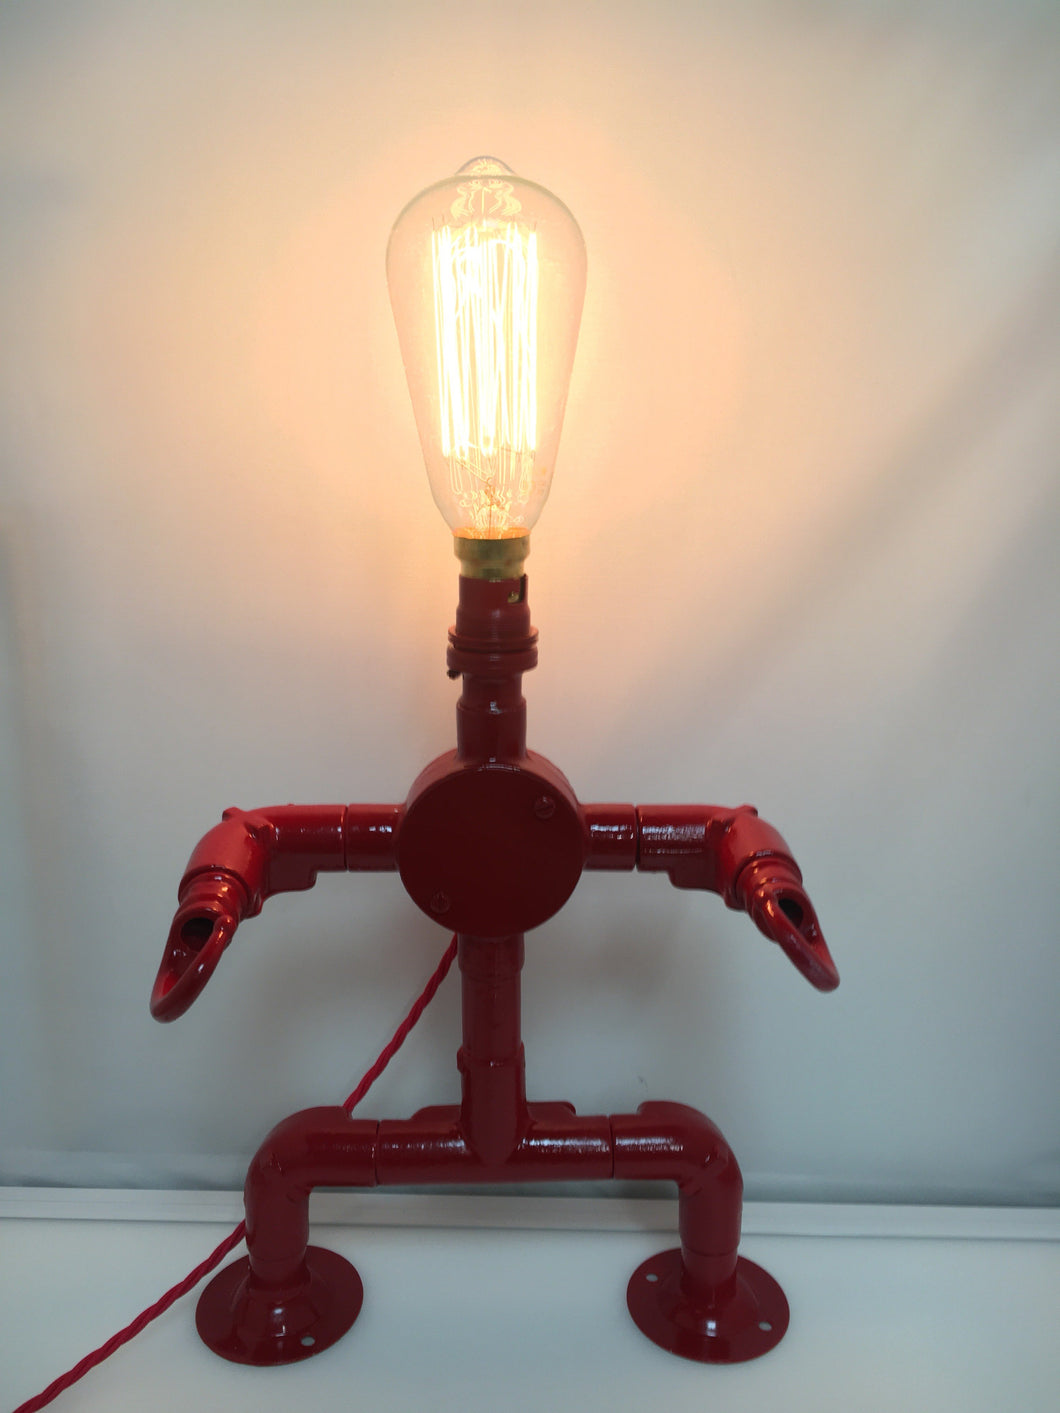 LIGHTBOT! THE INDUSTRIAL STEEL PIPE ROBOT TABLE LAMP, CONDUIT EDISON BULB